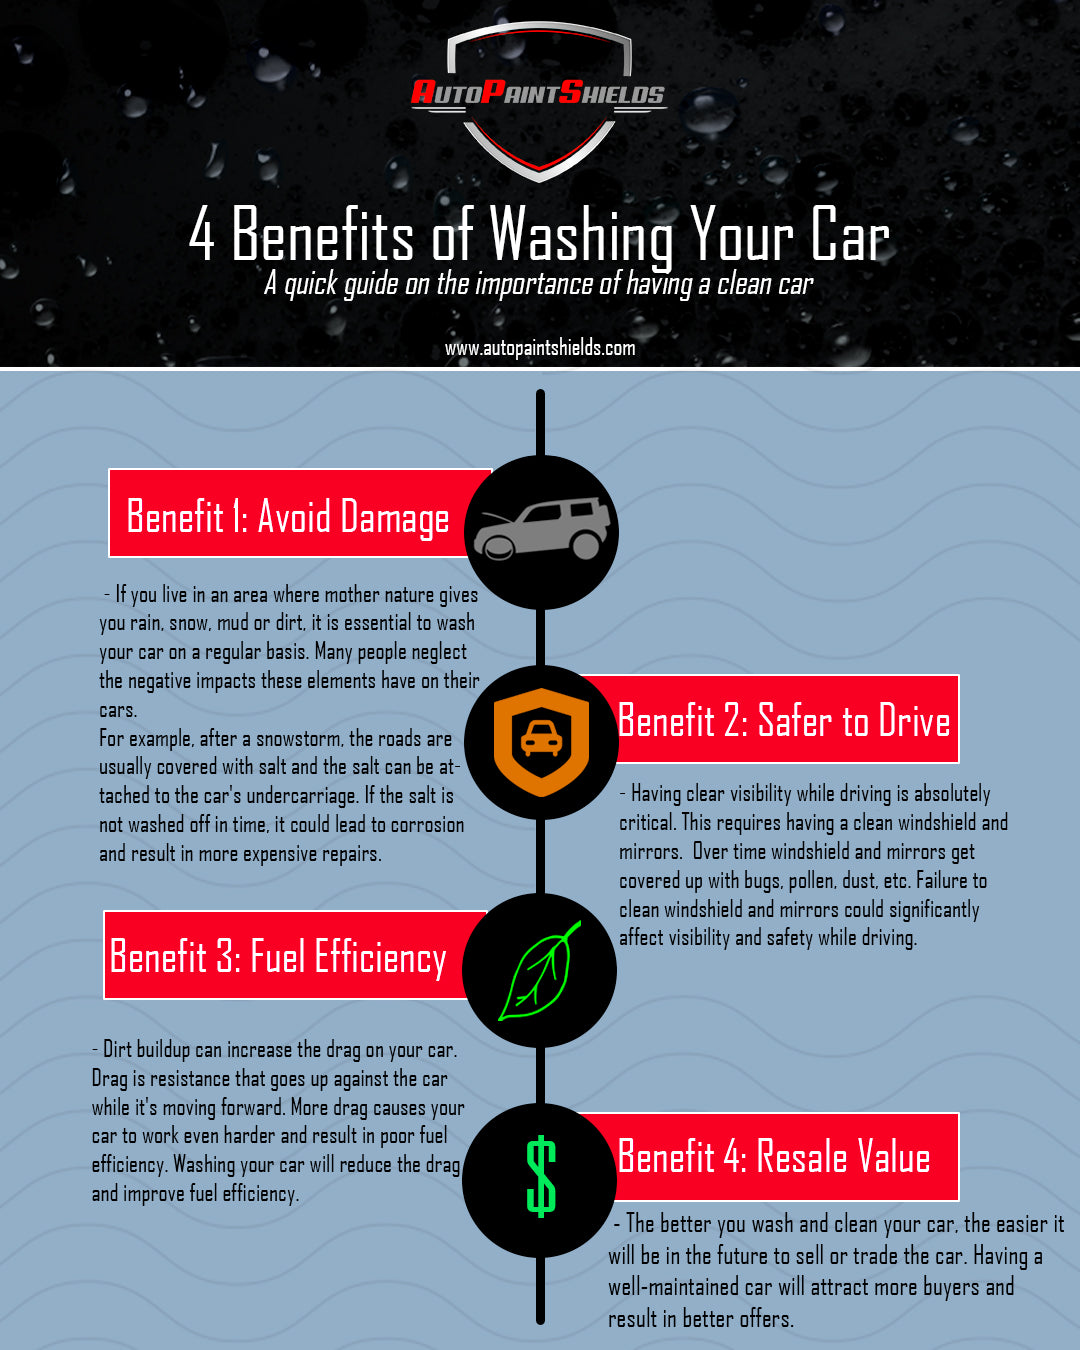 4 Benefits of Washing Your Car